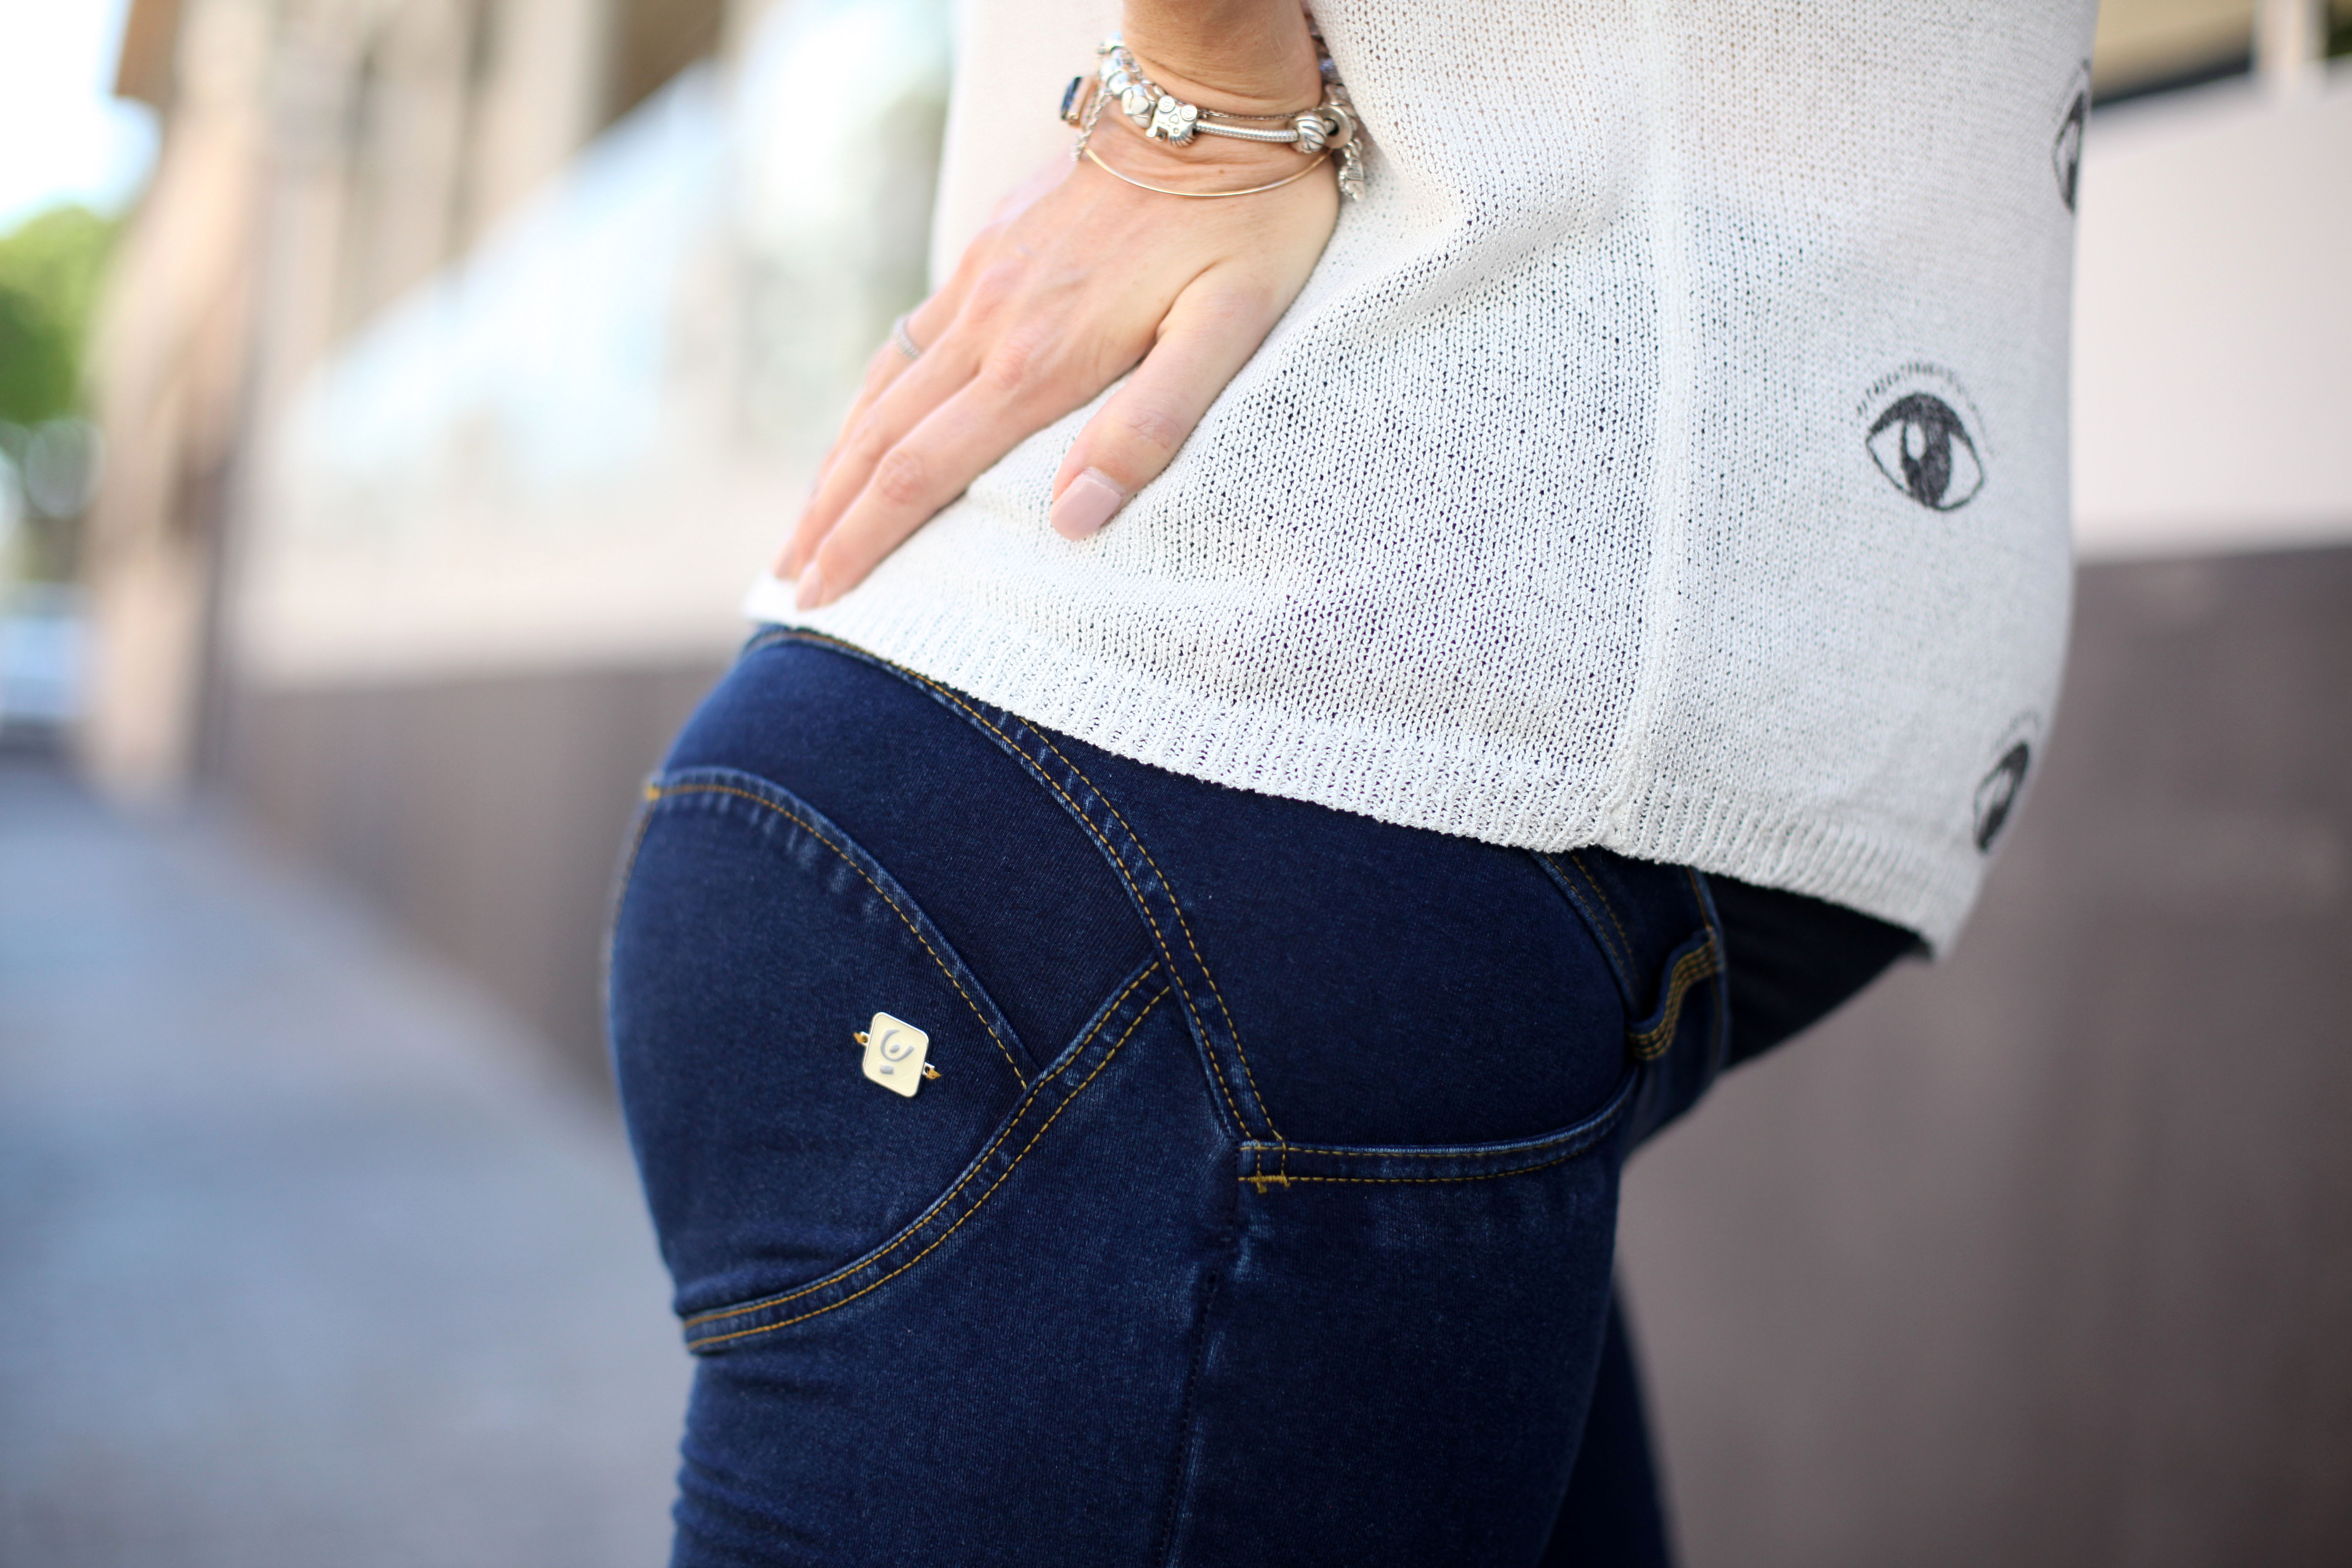 8d23768e47f5c ... they still lift the bum area, smooth your legs and sit comfortably  below the bump, with a stretchy and supportive bump band that's a part of  the jeans.